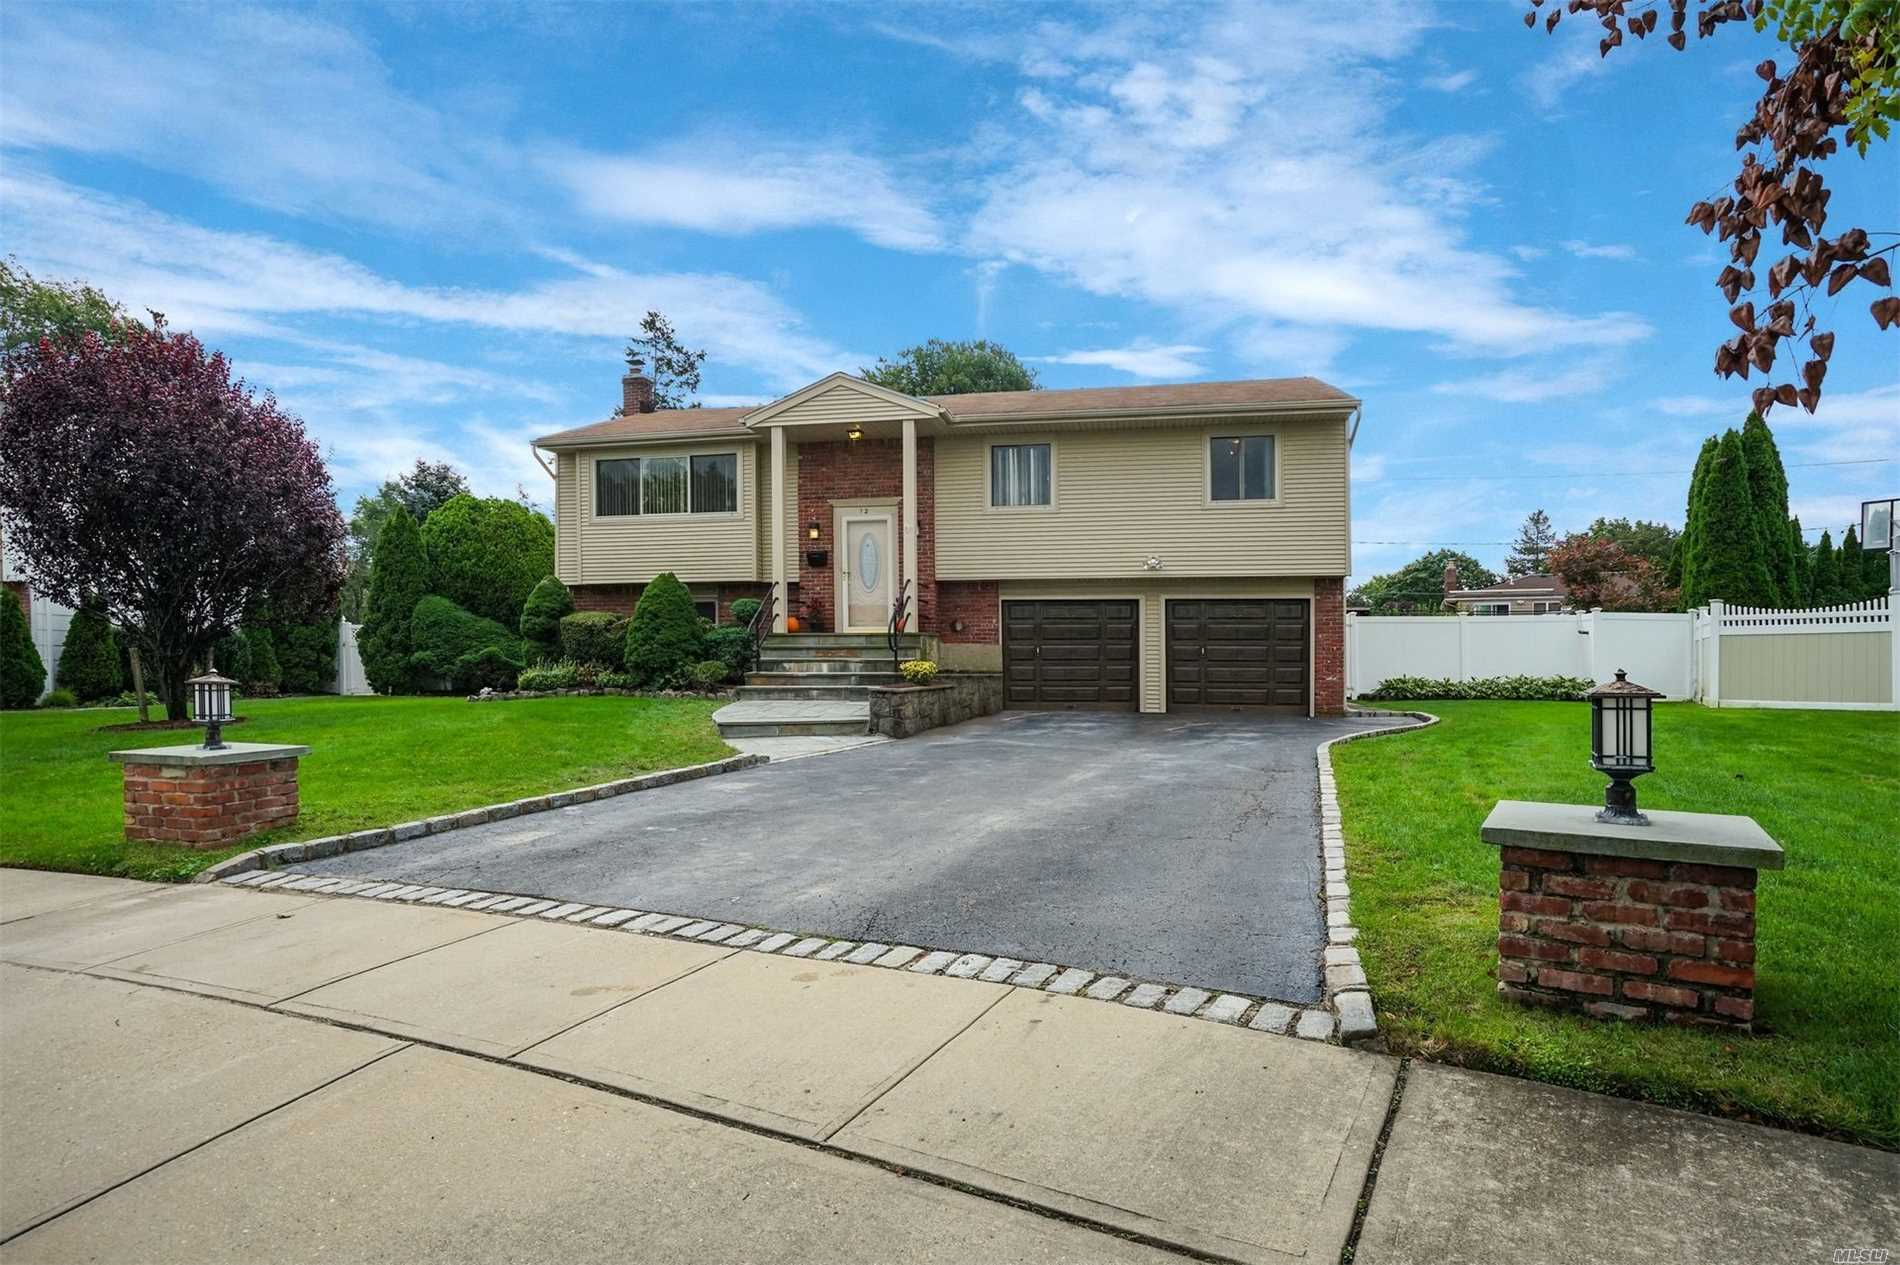 Photo of home for sale at 12 Pebble Pl, Commack NY